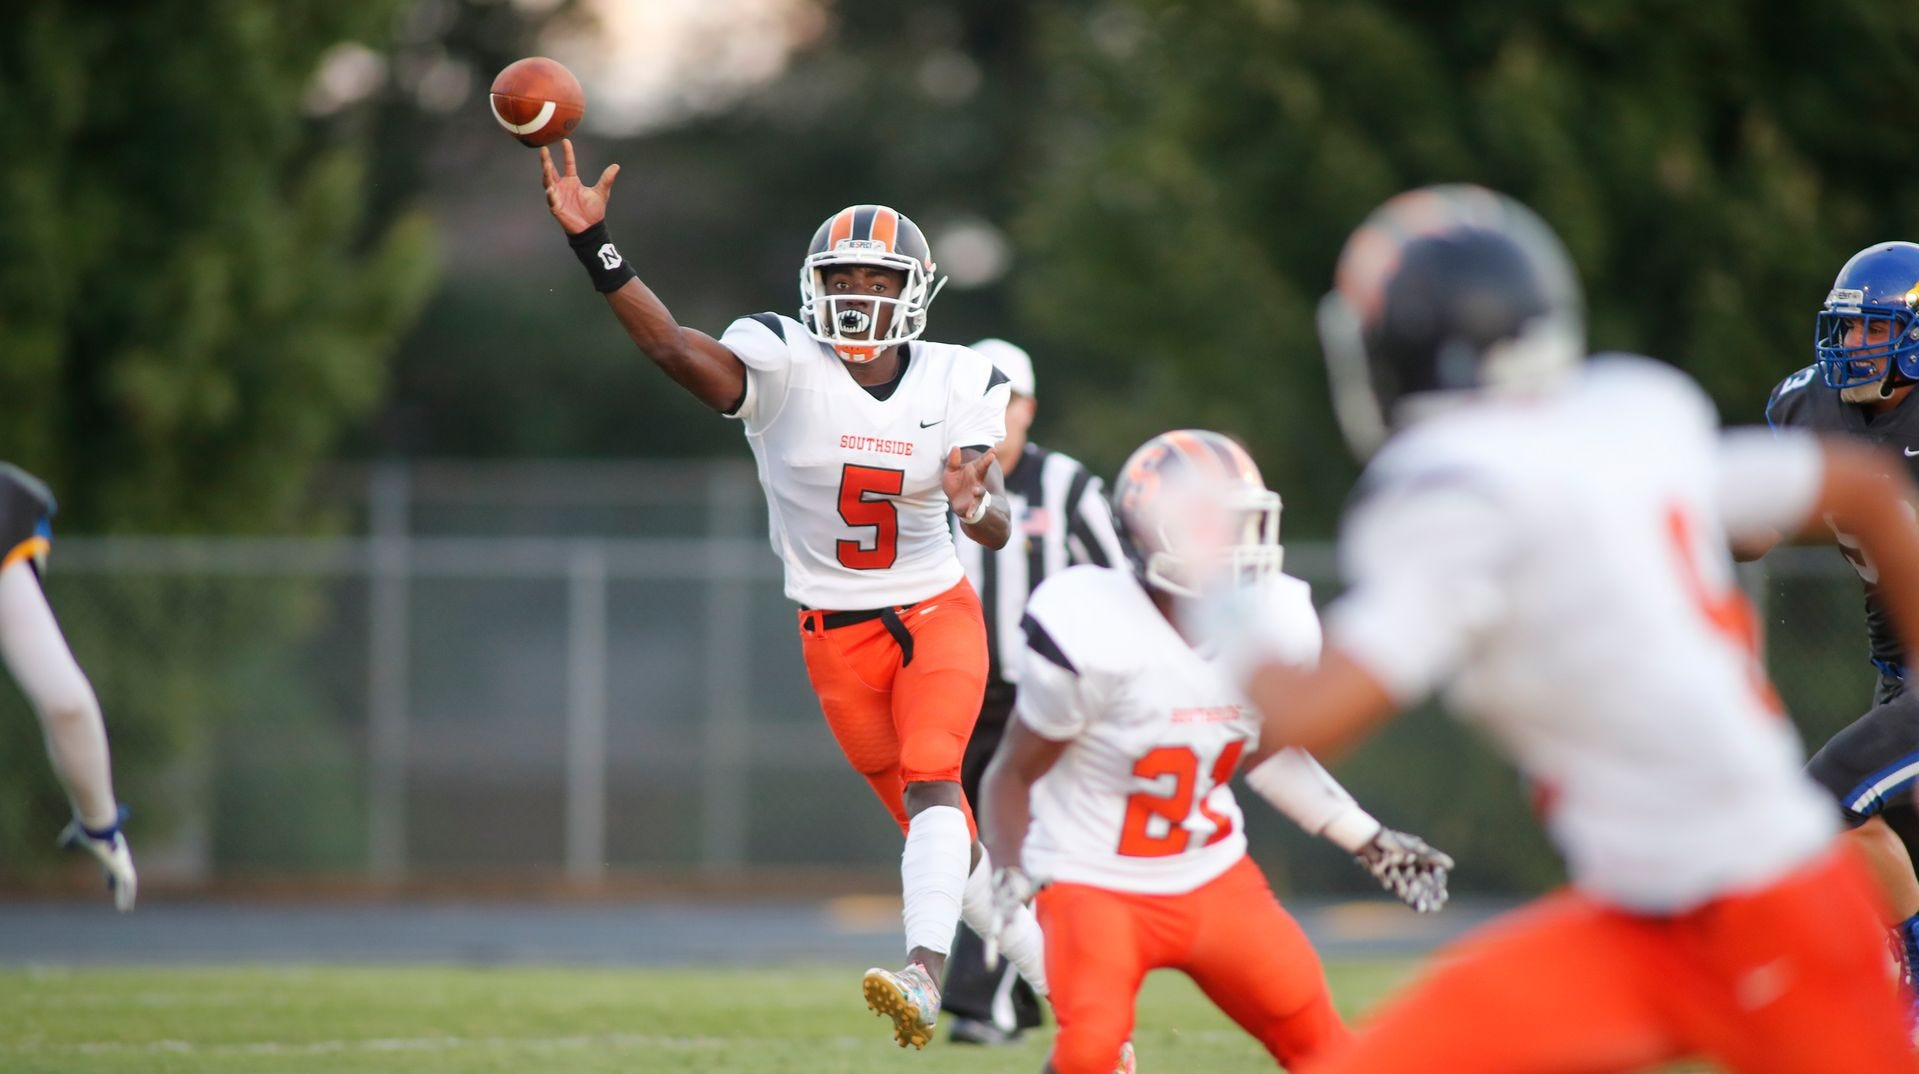 4 matchups to watch in this week's high school football games